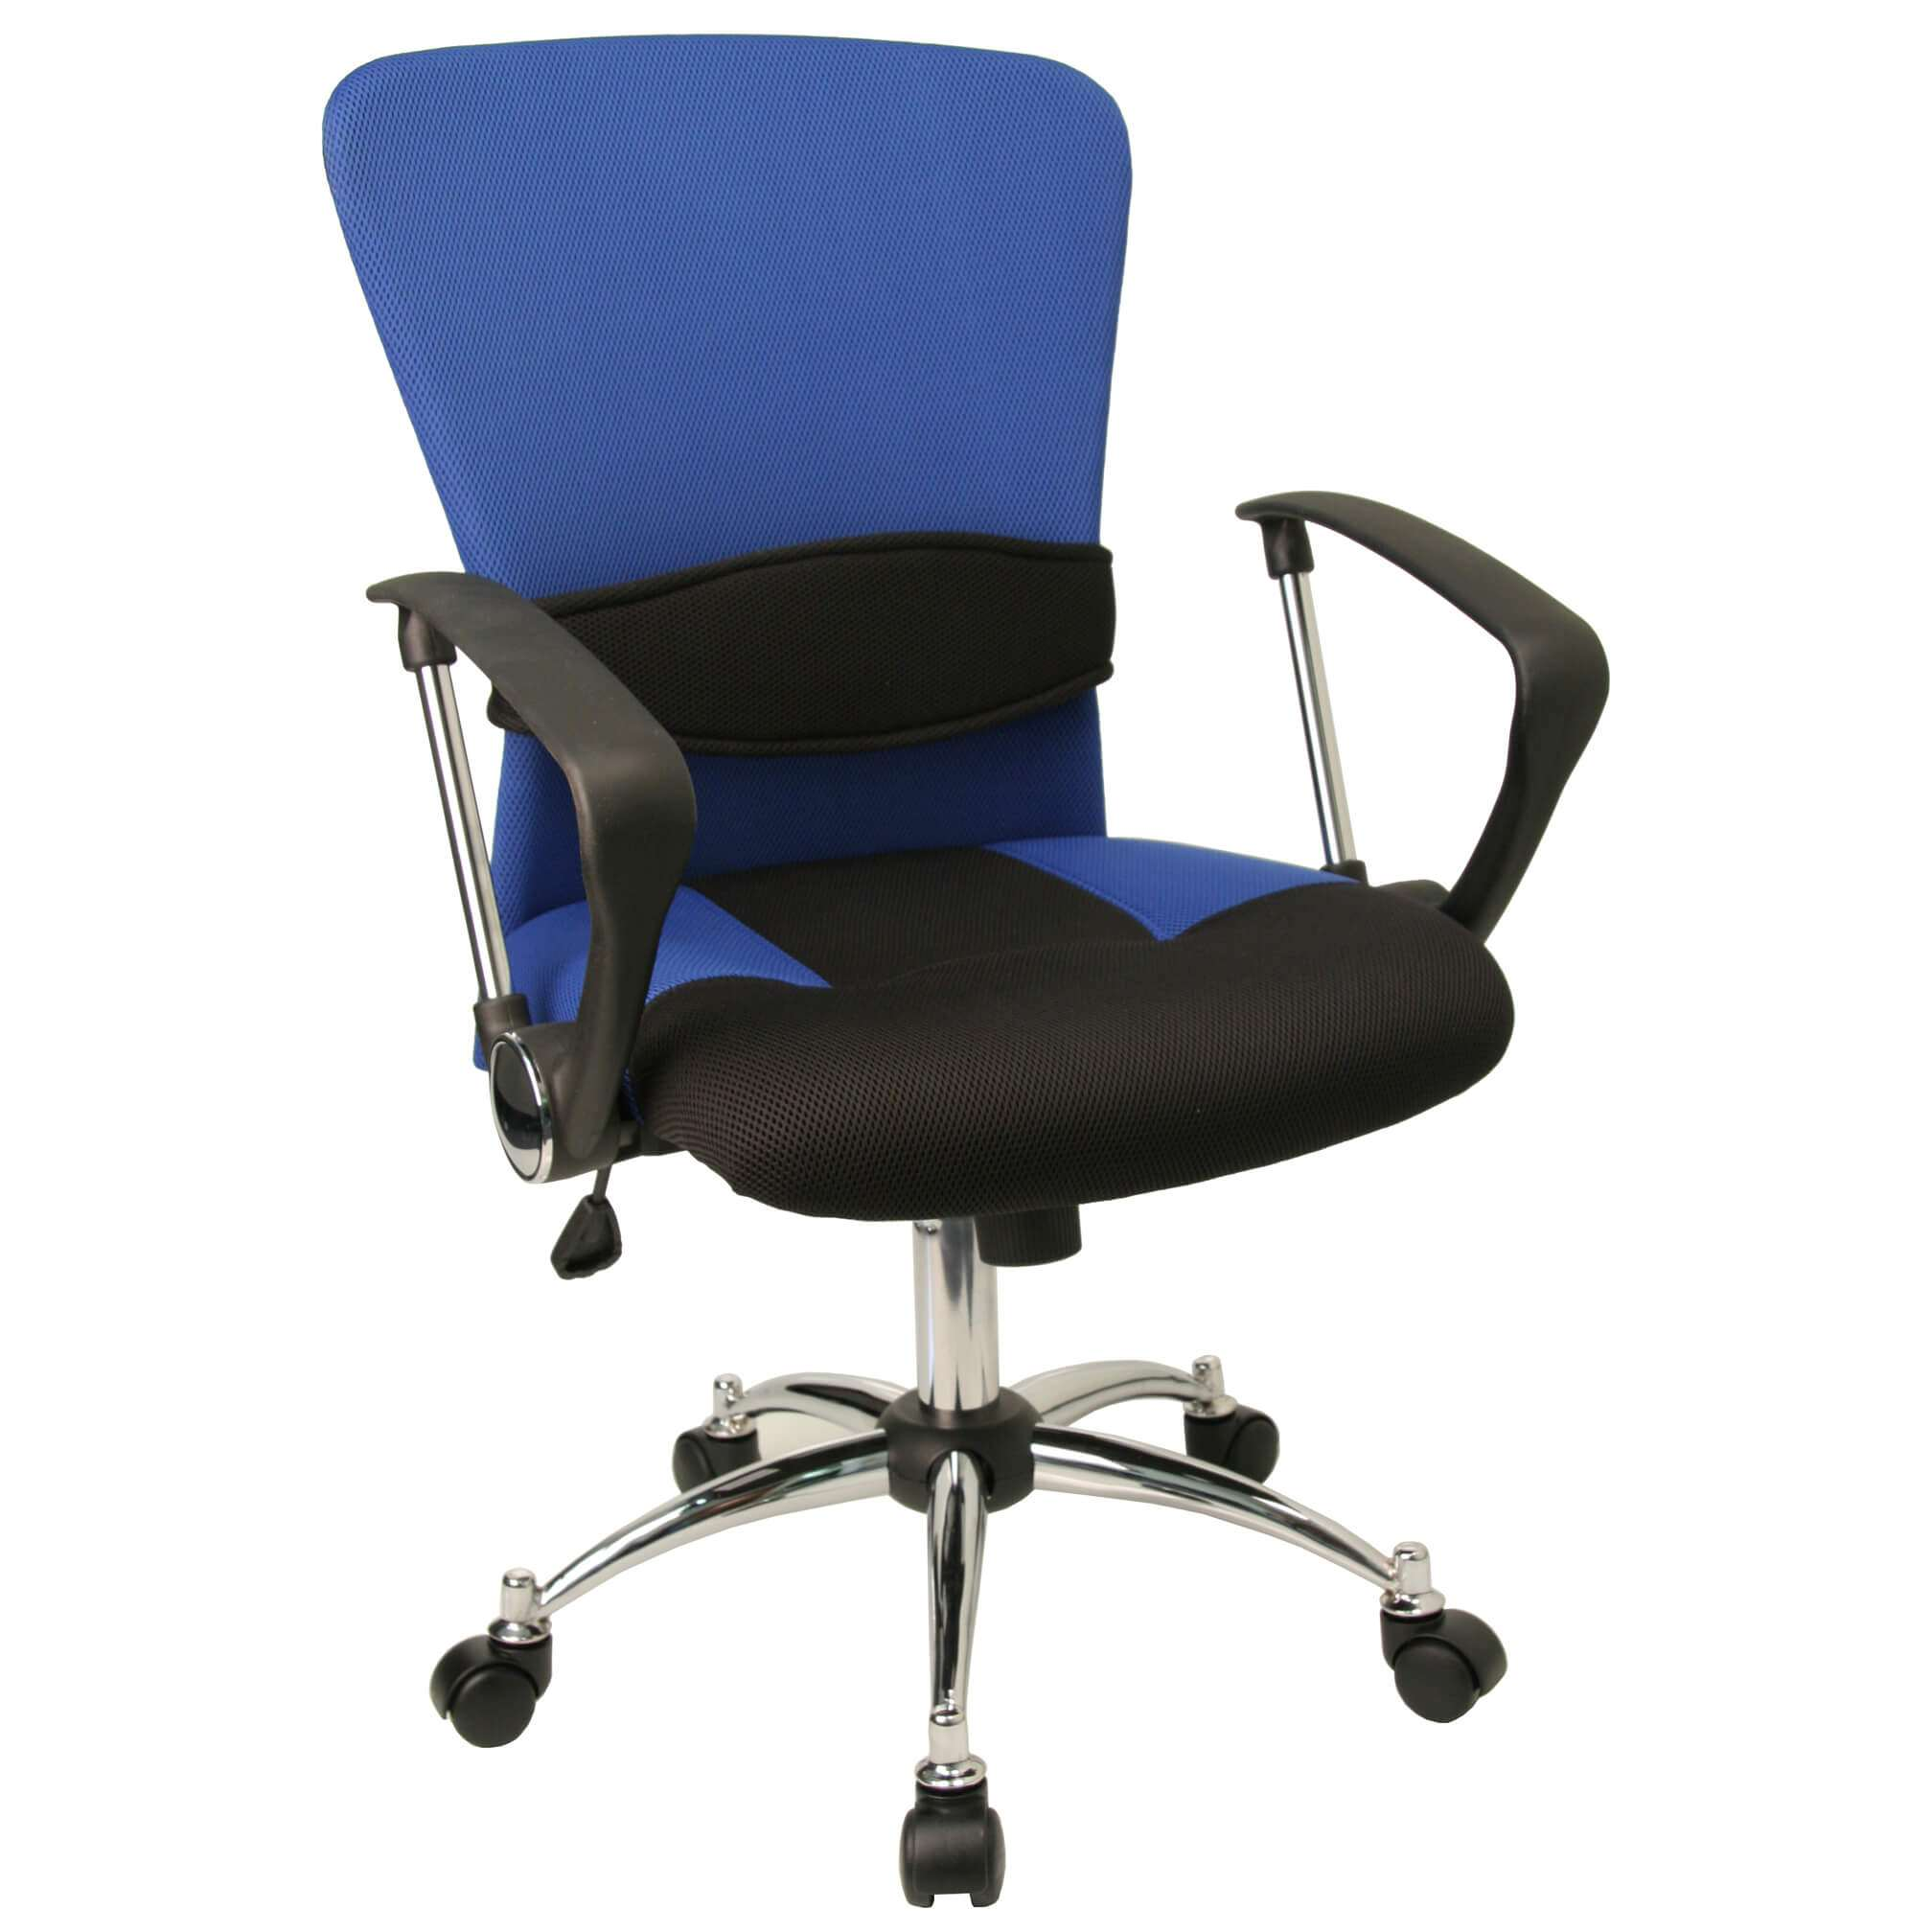 back support office chair boston interiors and a half night star lumbar